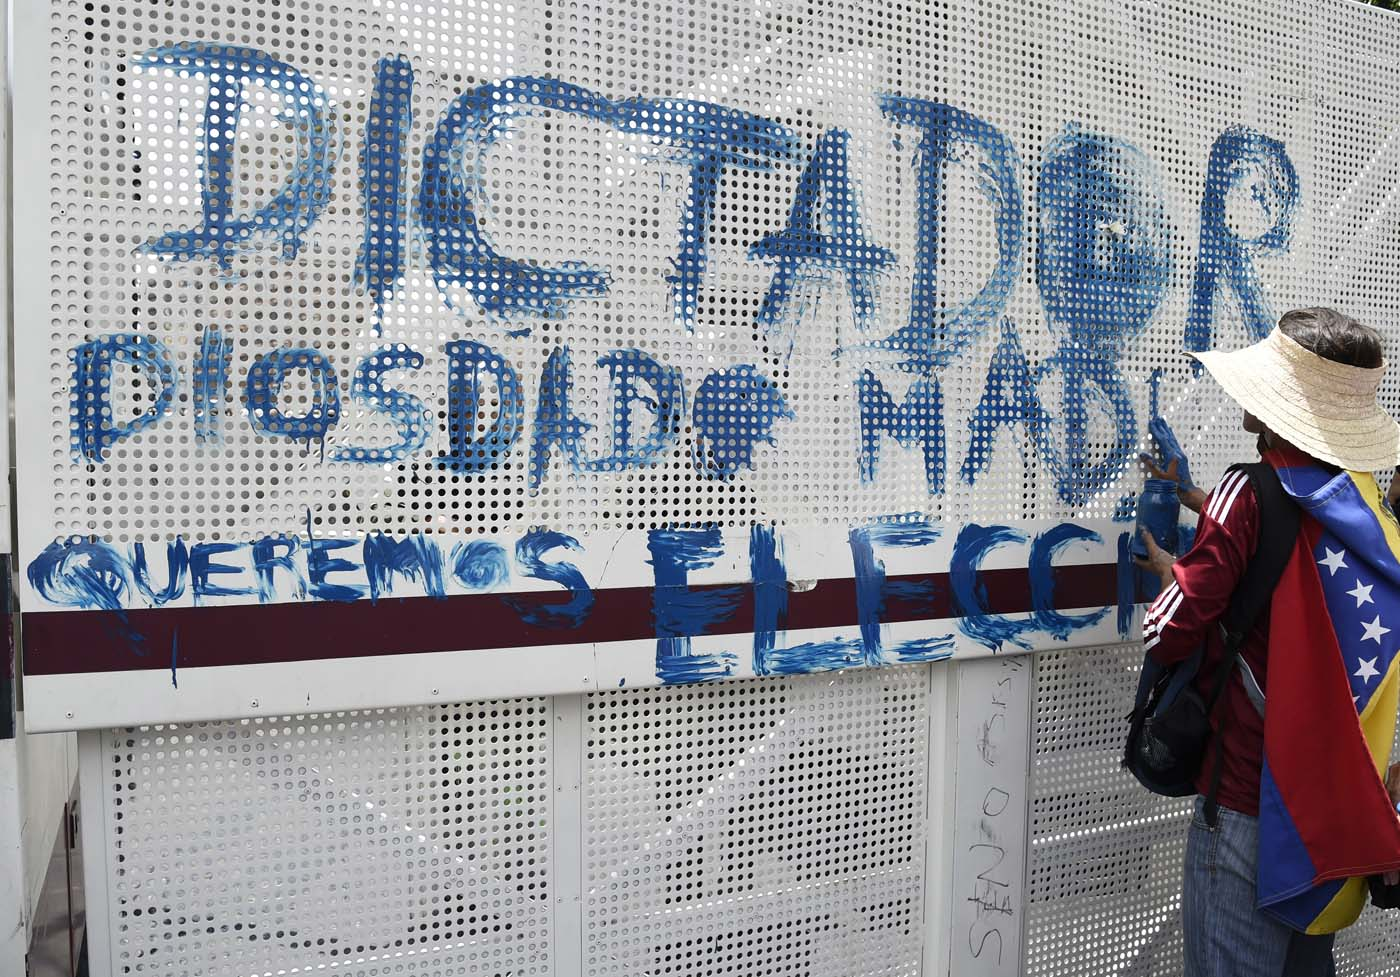 A Venezuelan opposition activist paints a graffiti on a fence during a women's march aimed to keep pressure on President Nicolas Maduro, whose authority is being increasingly challenged by protests and deadly unrest, in Caracas on May 6, 2017. The death toll since April, when the protests intensified after Maduro's administration and the courts stepped up efforts to undermine the opposition, is at least 36 according to prosecutors. / AFP PHOTO / JUAN BARRETO